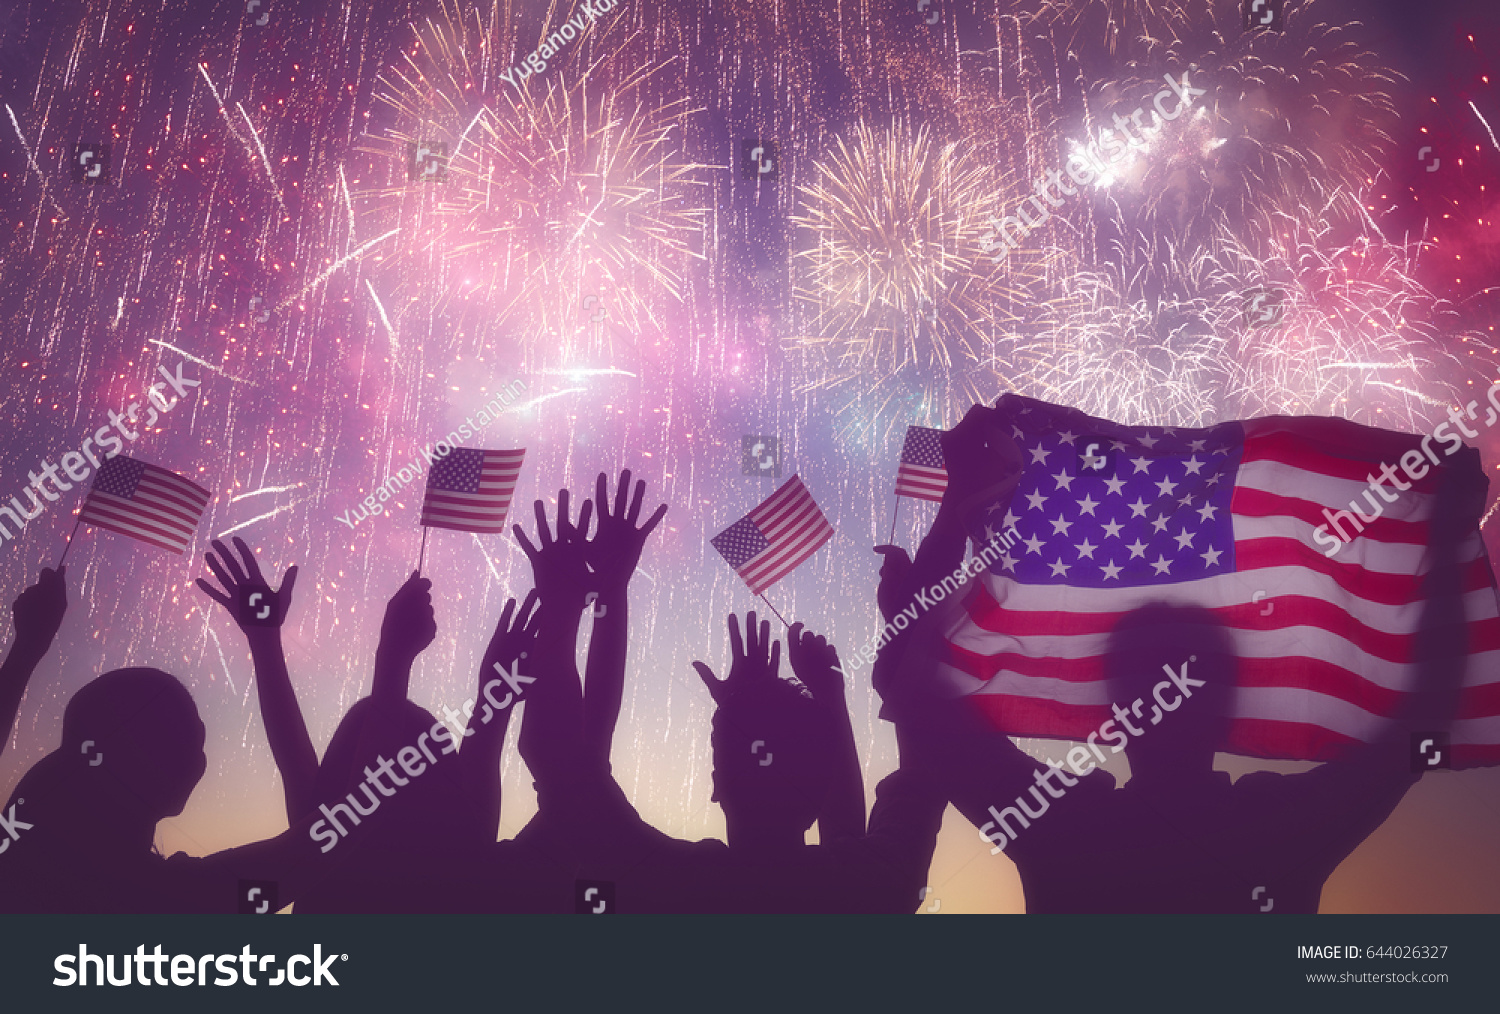 Patriotic holiday. Silhouettes of people holding the Flag of USA. America celebrate 4th of July. #644026327